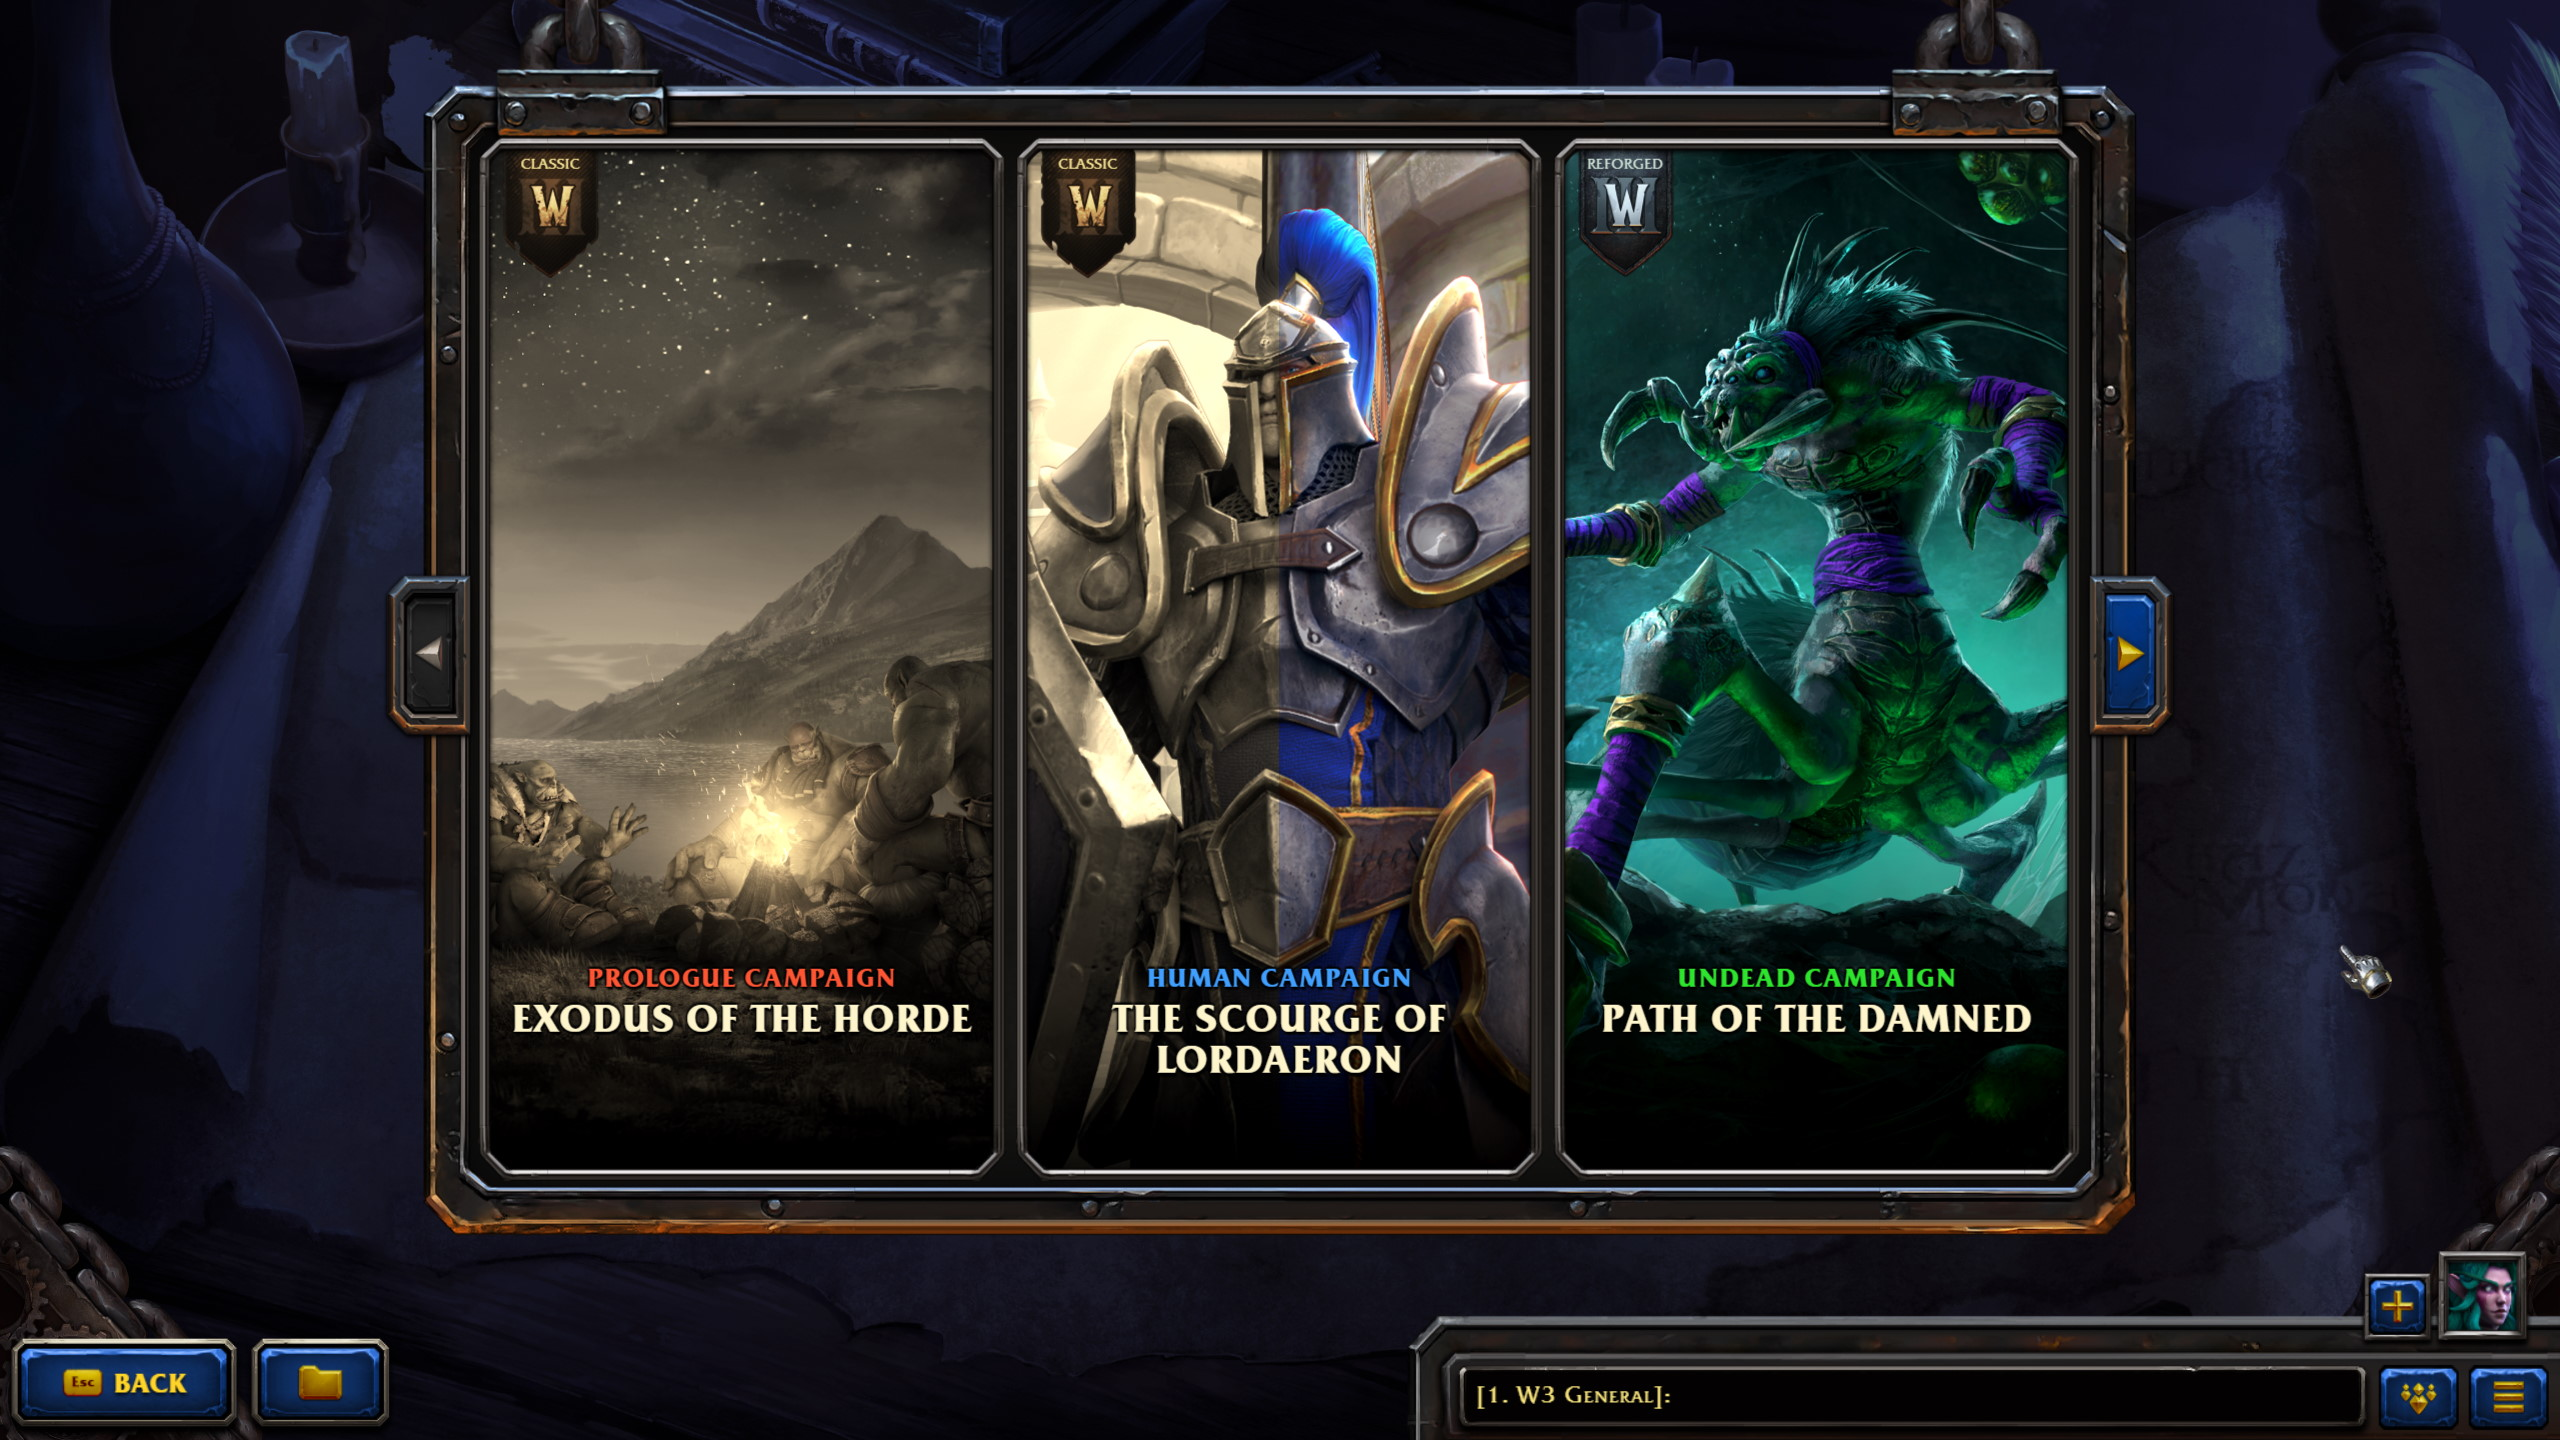 Warcraft 3 Reforged Sync Campagin Progress Between Classic And